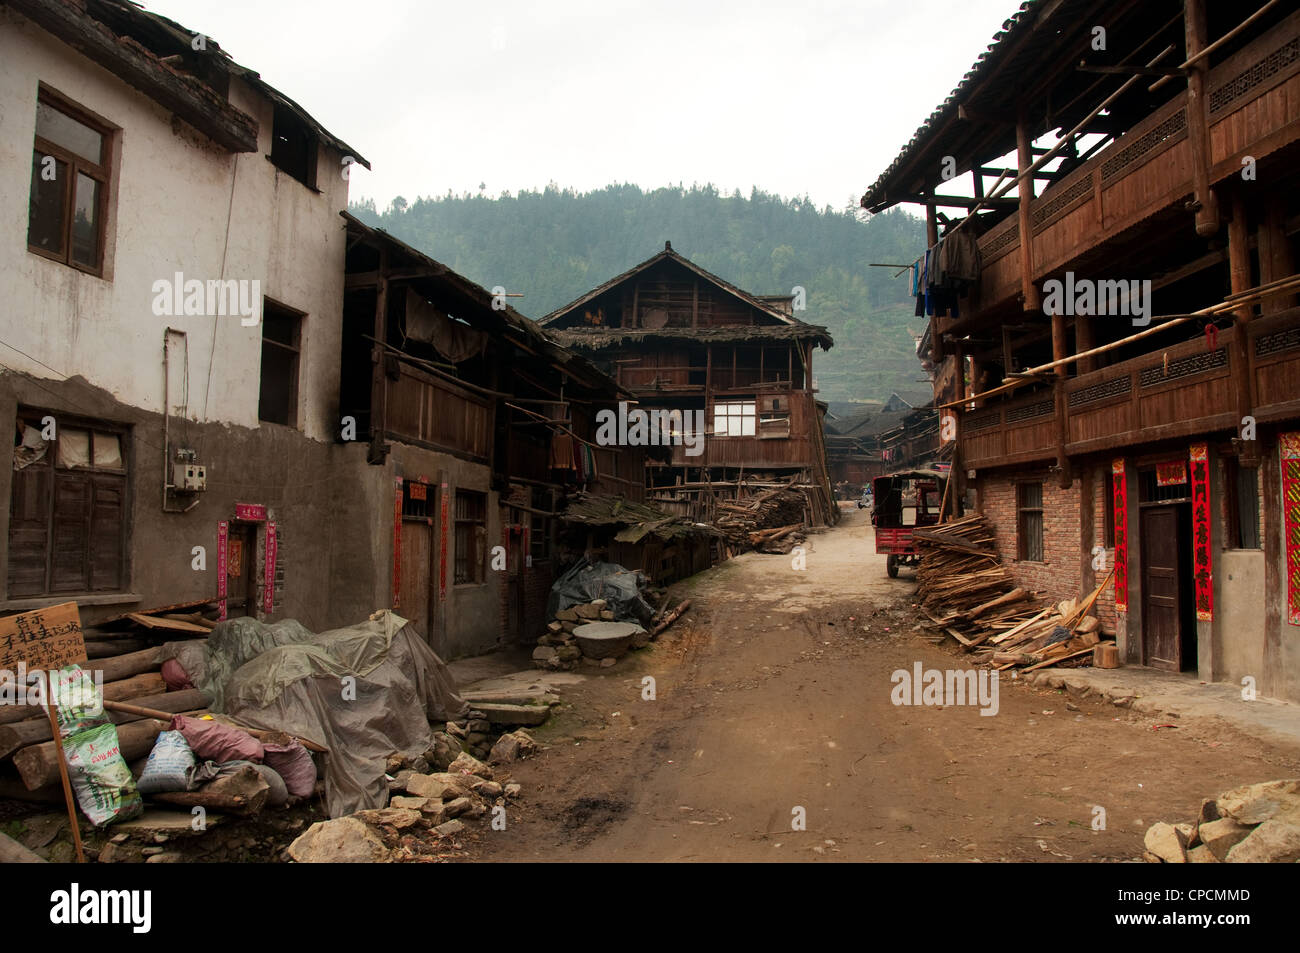 An unpaved street of a Dong people village, Southern China - Stock Image